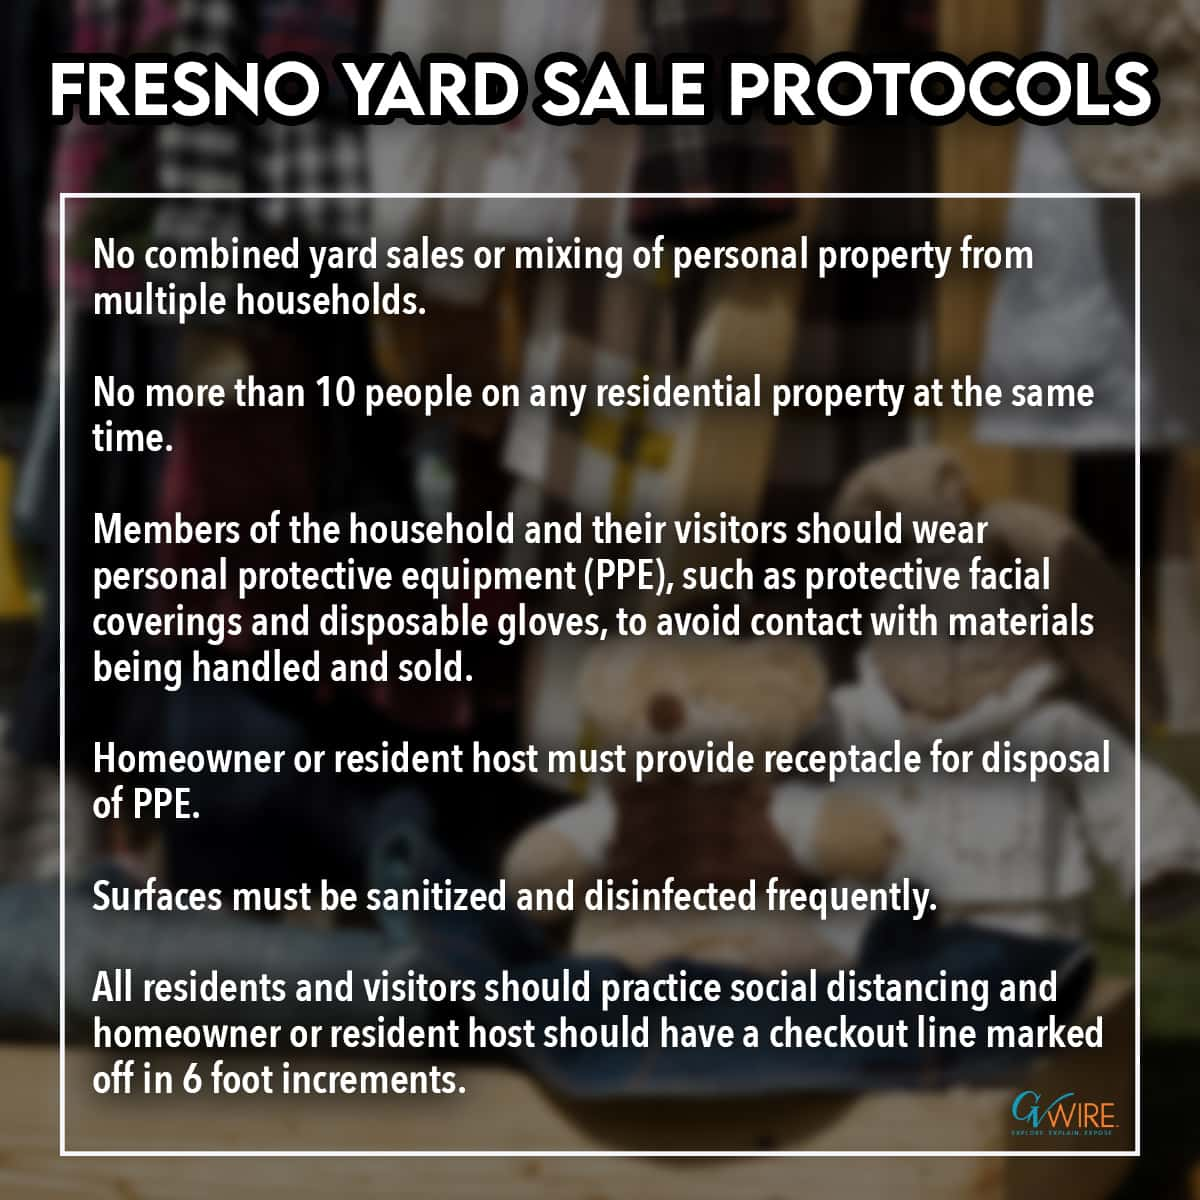 Chart listing the COVID-19 protocols for conducting a yard sale in Fresno, California